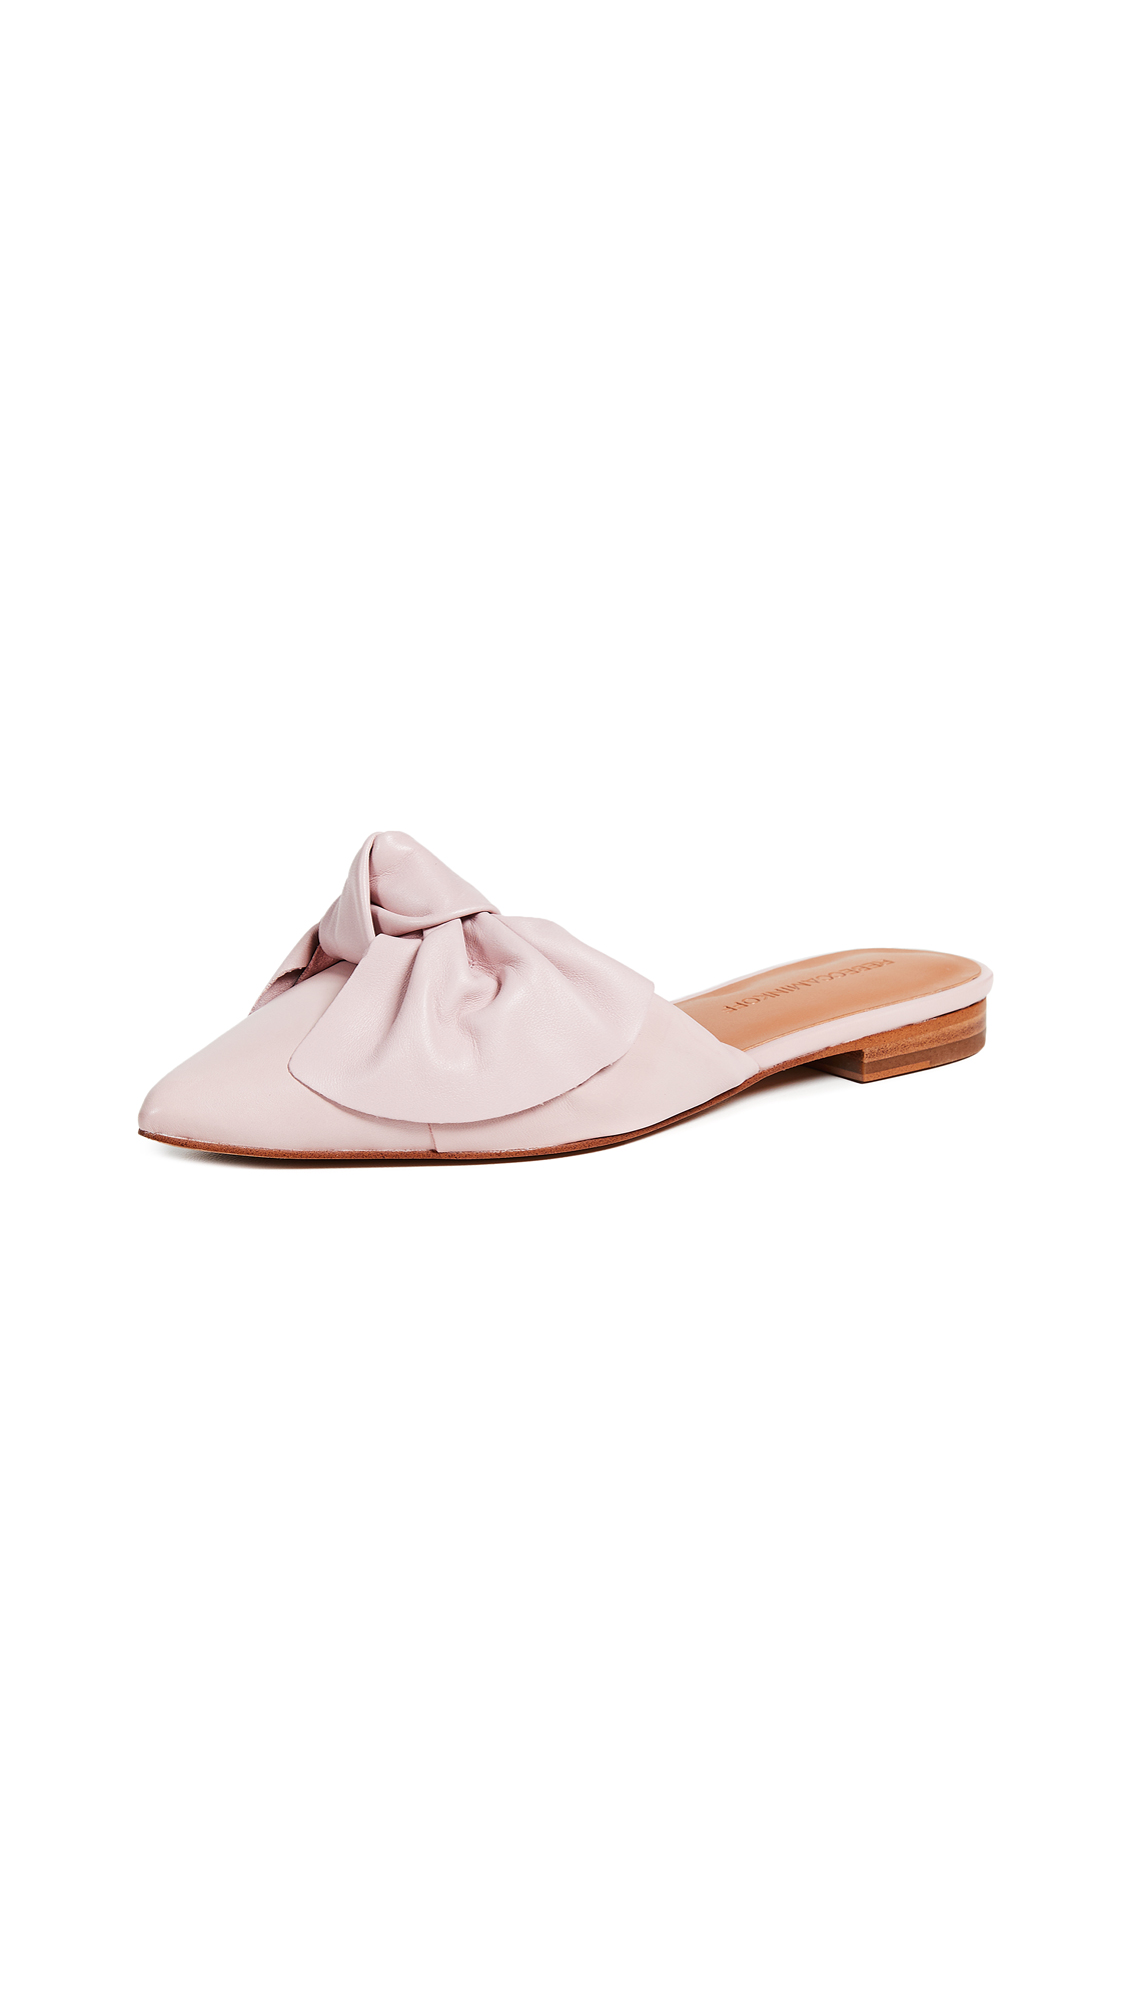 Rebecca Minkoff Alexis Bow Point Toe Flats - Pink